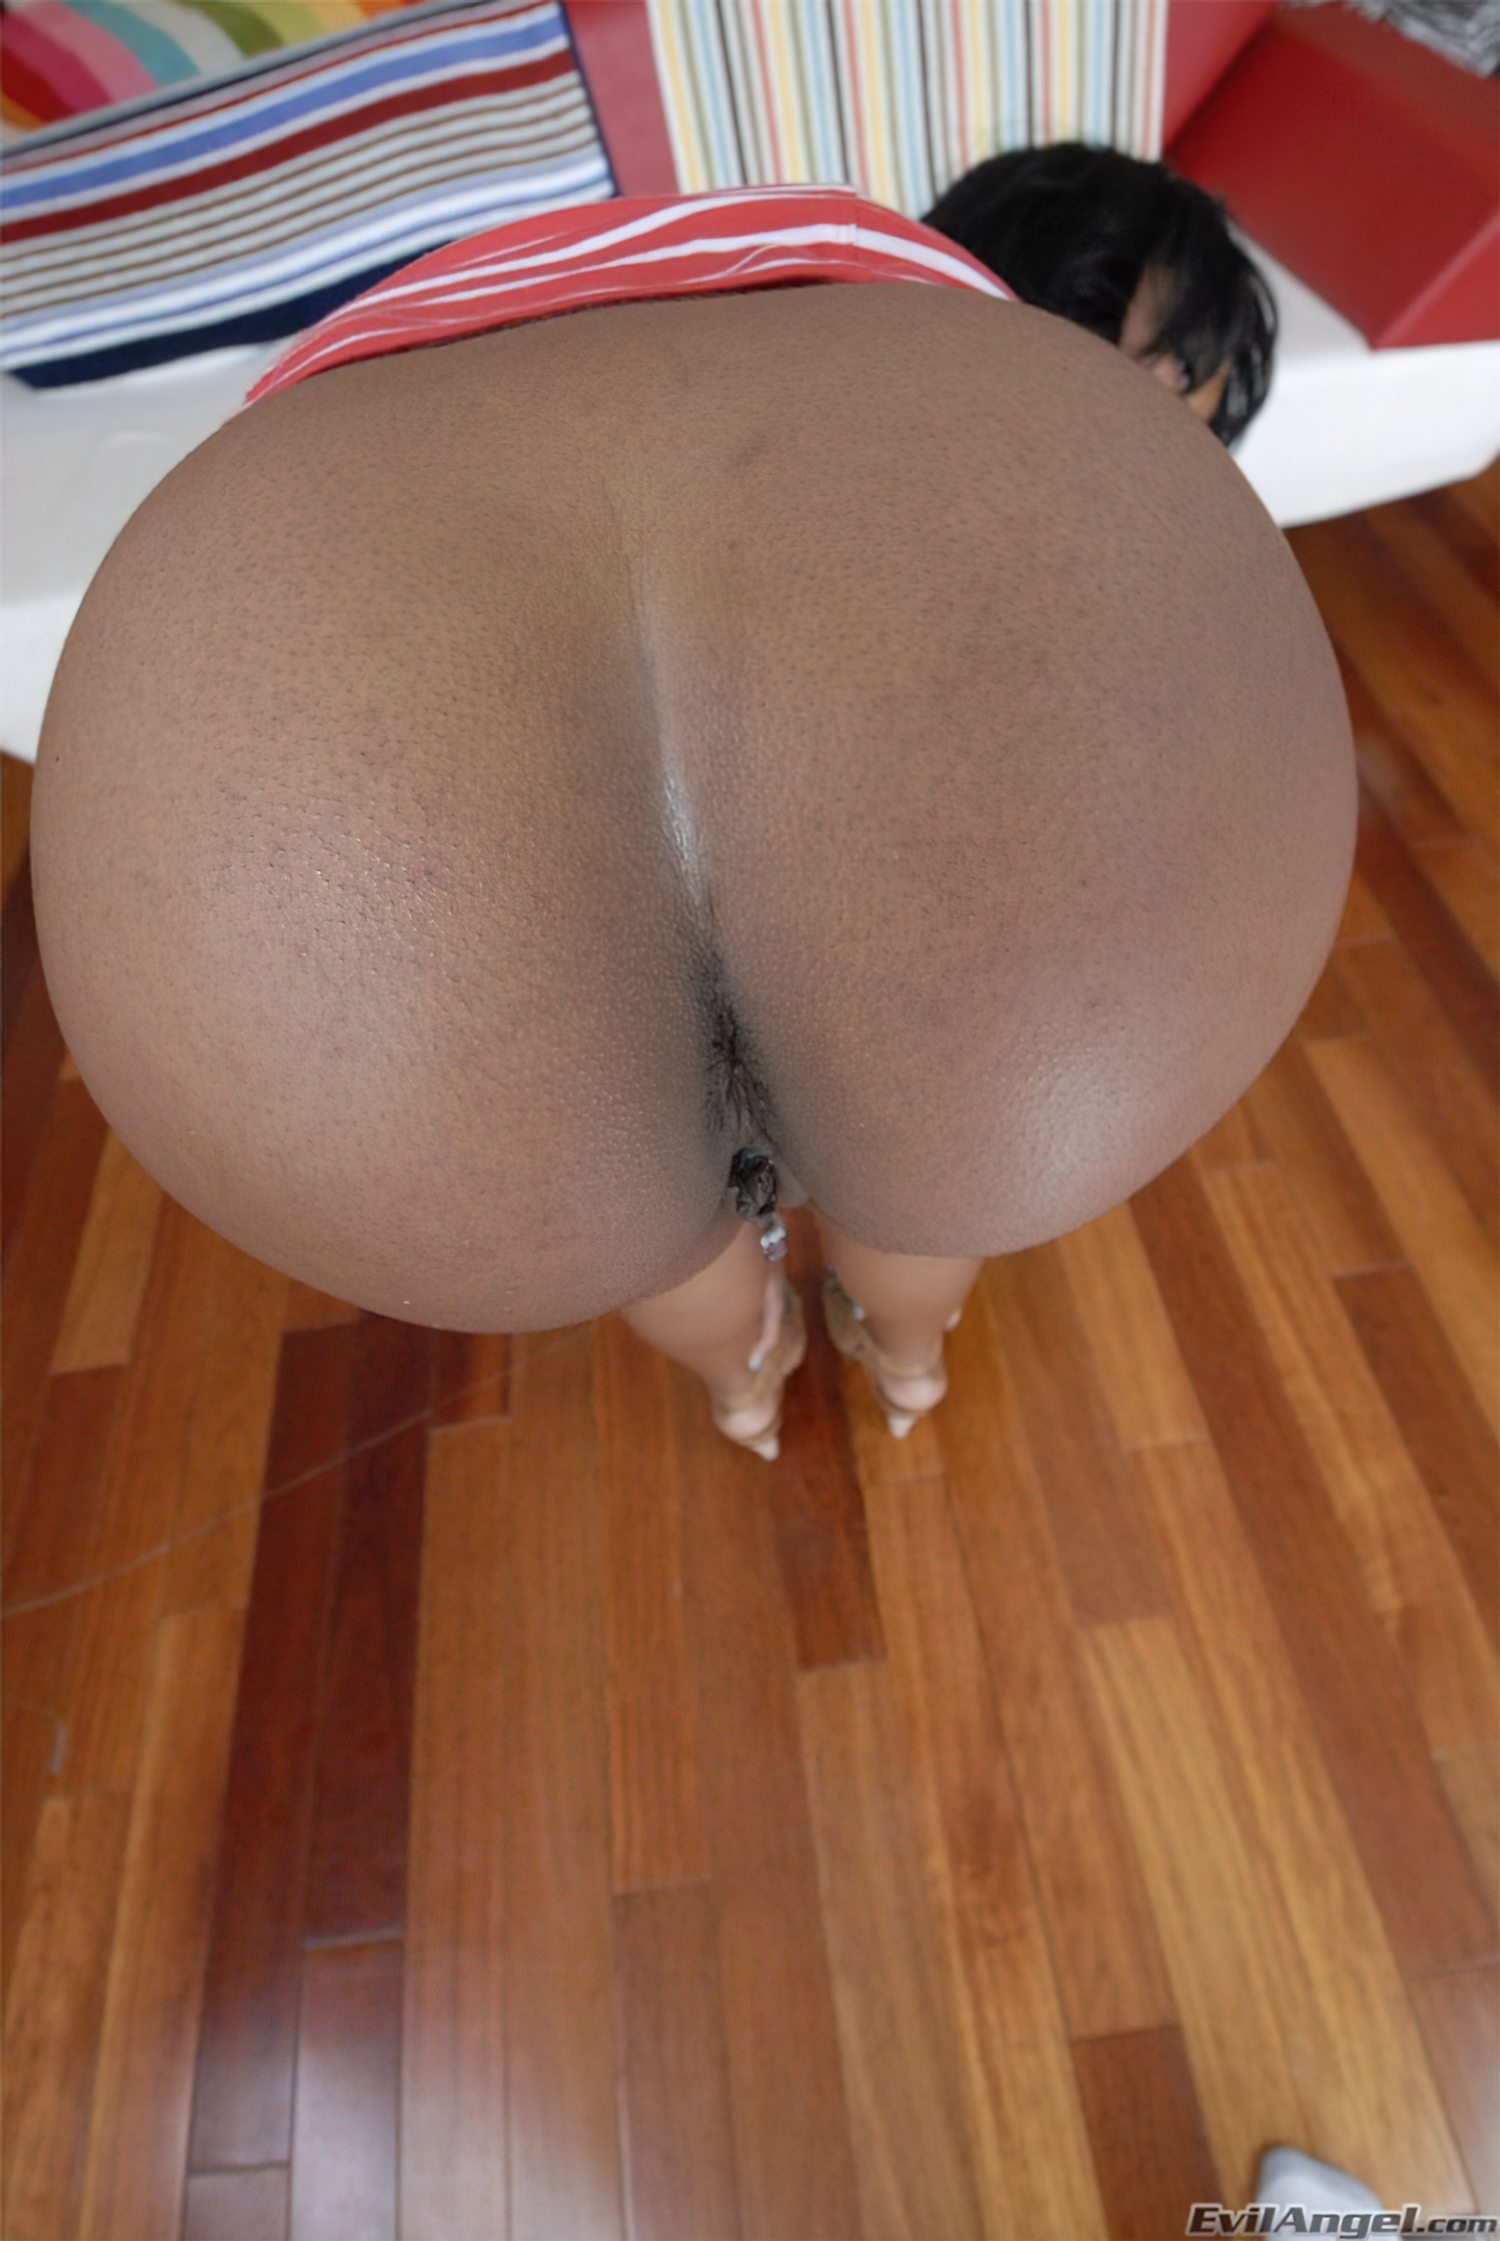 Negra do Rabo Grande (4)